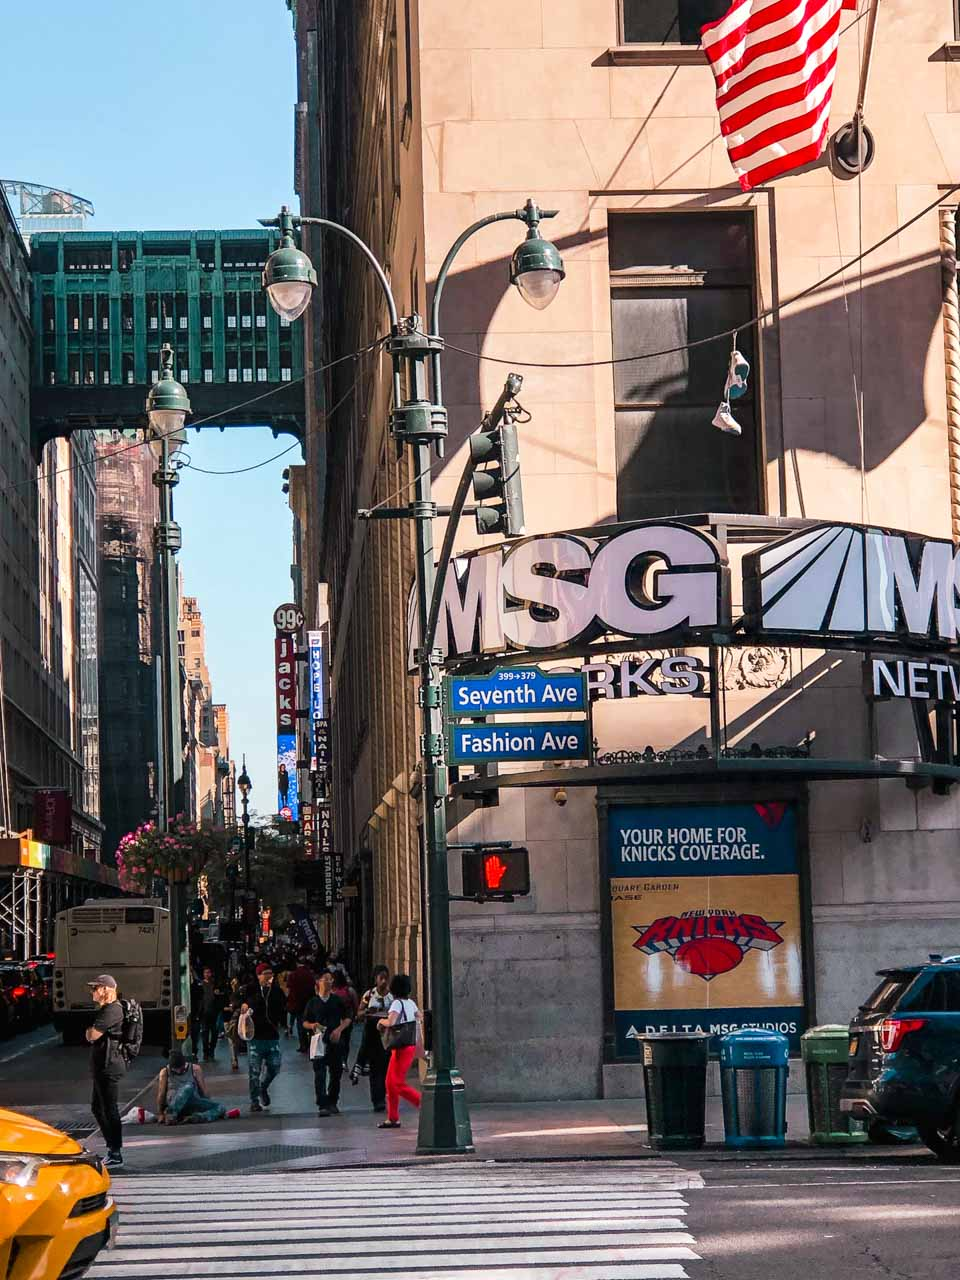 The view of Seventh Avenue, also known as Fashion Avenue, in New York City